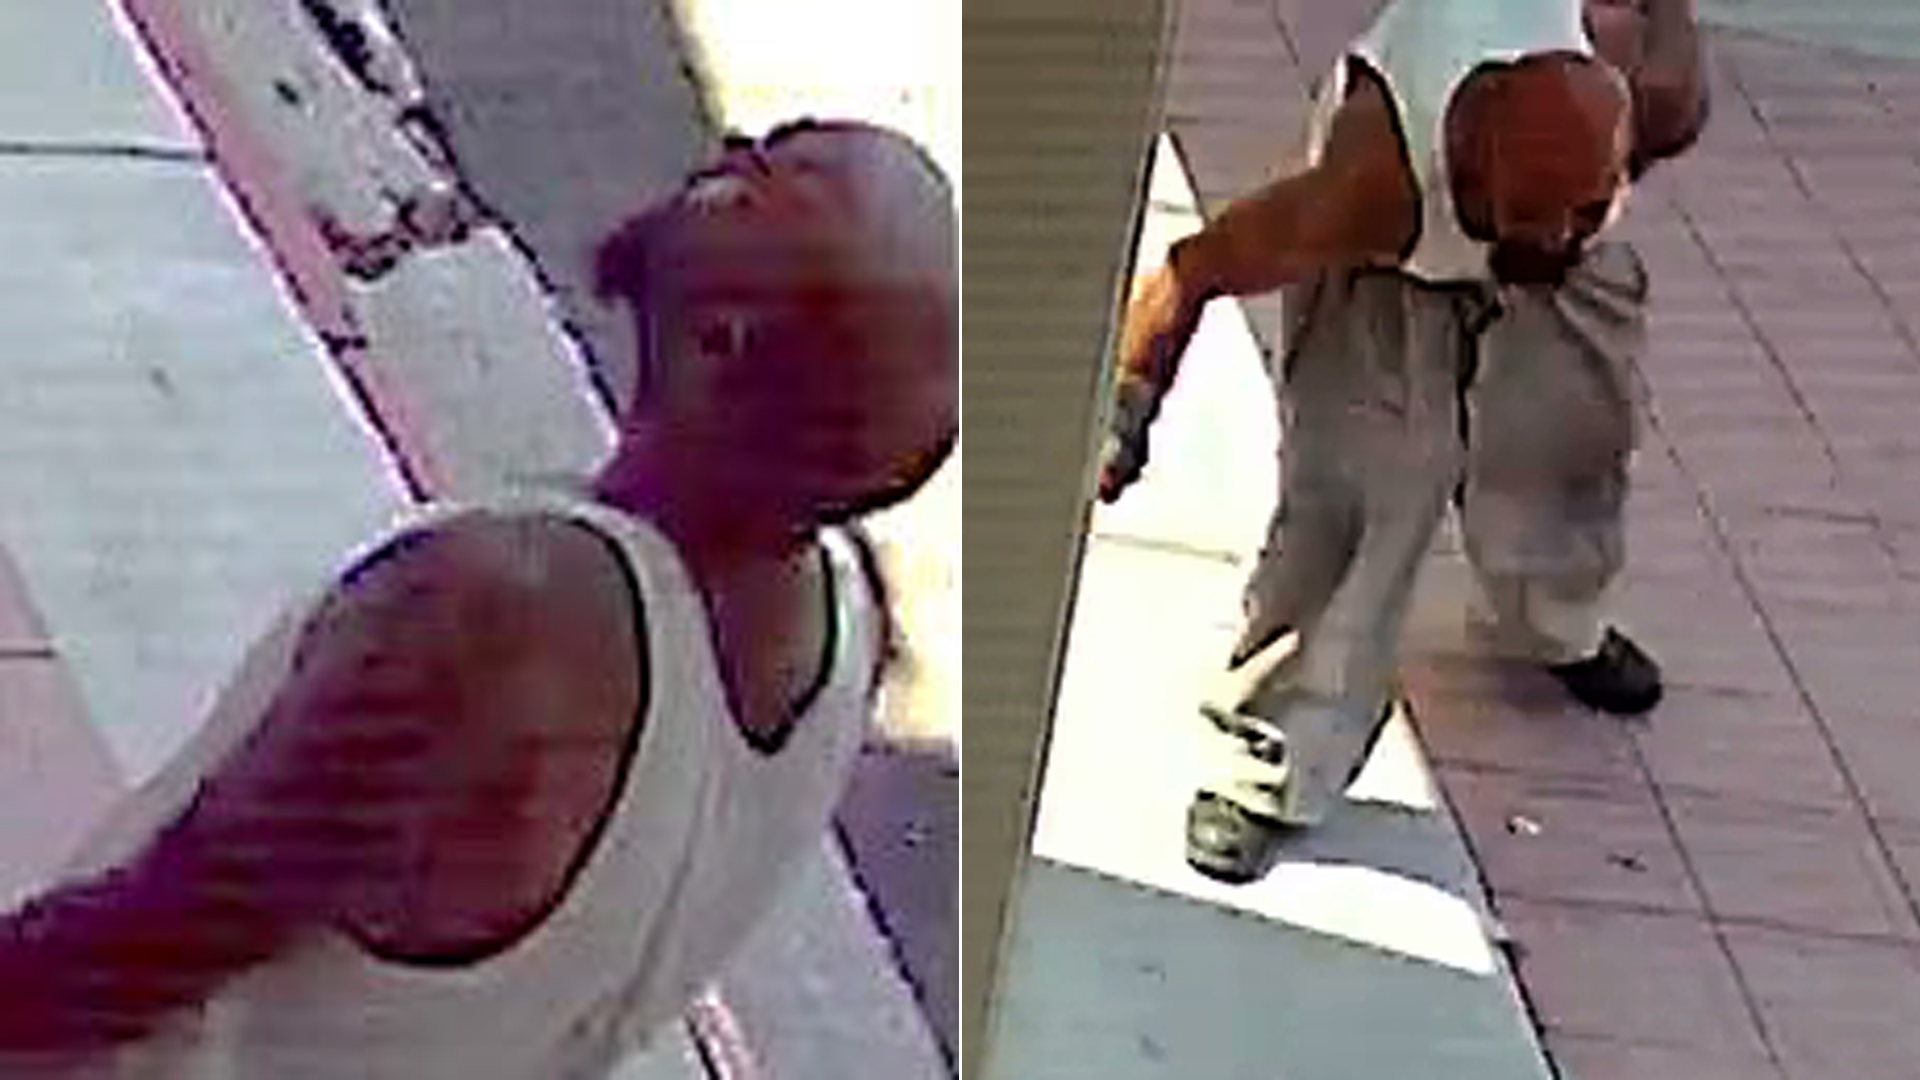 The man accused in a sex assault attempt near the UCLA campus is seen in stills from surveillance video released July 23, 2019, by the UCLA Police Department.